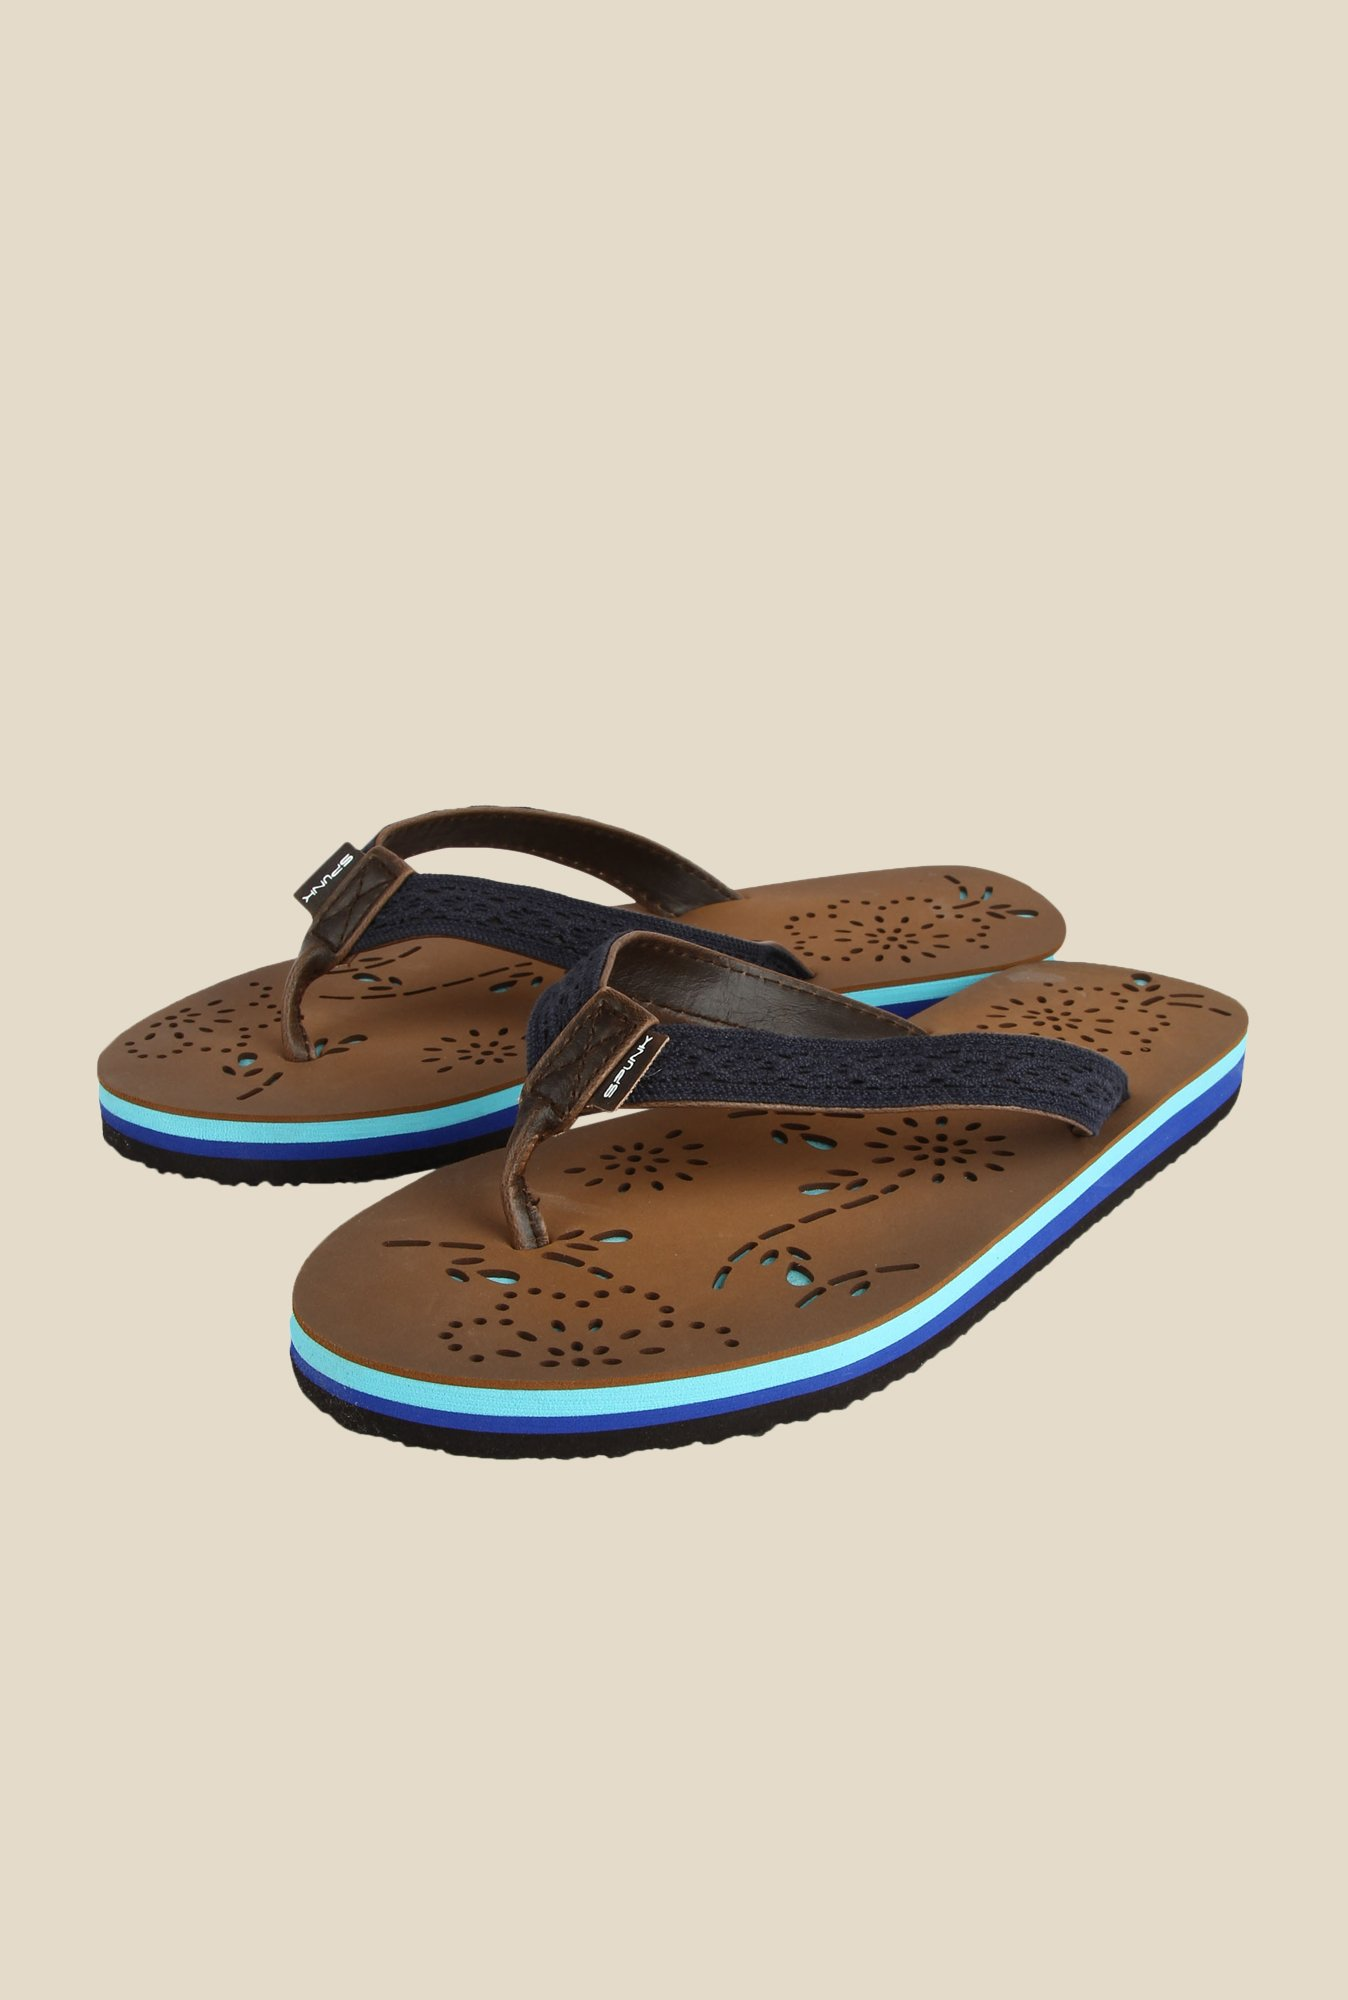 Spunk Hannah Blue & Brown Flip Flops